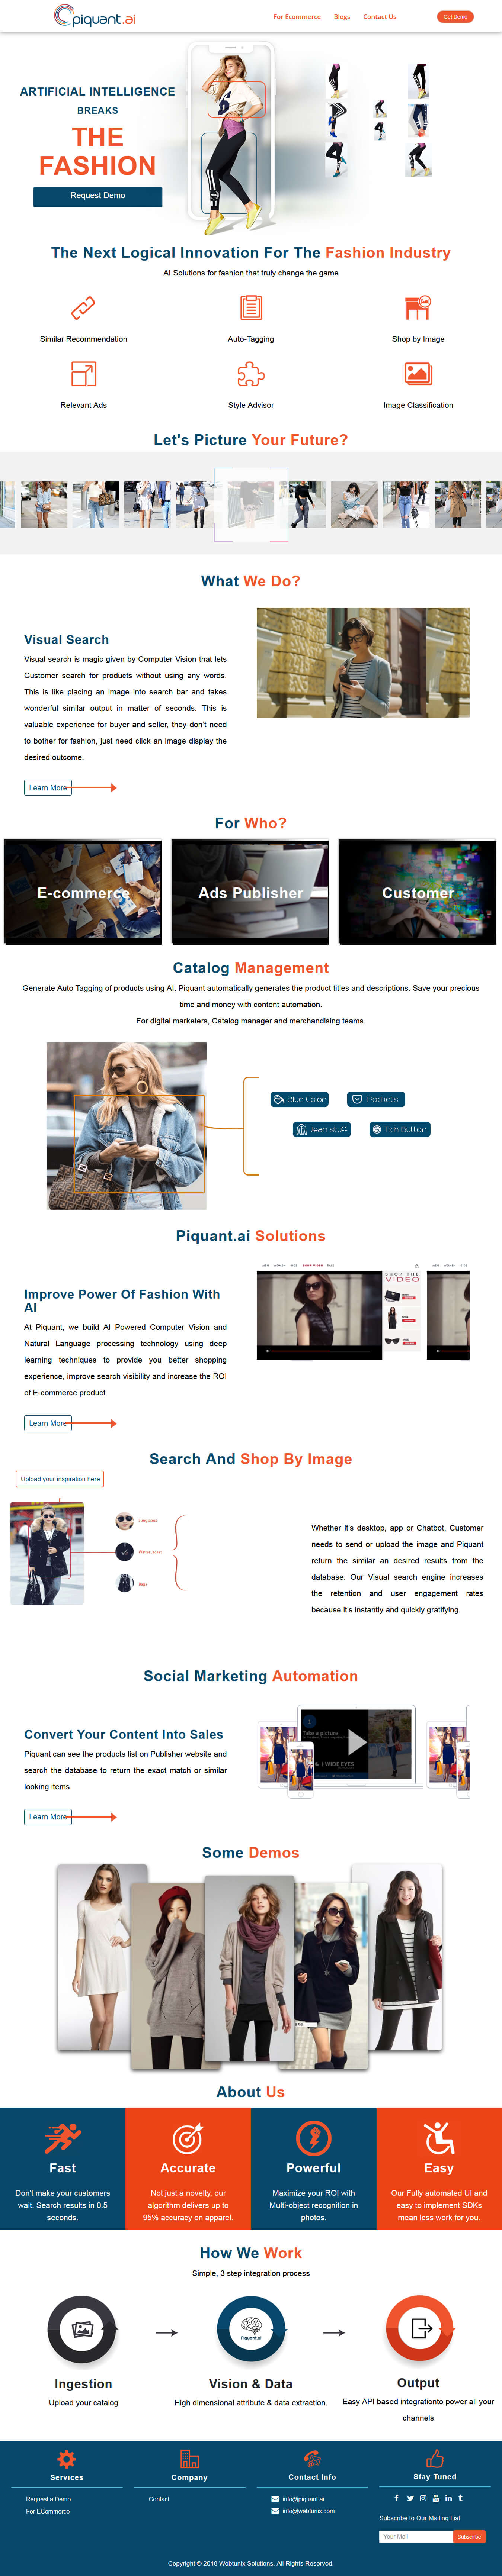 piquant - fashion recommendation with machine learning